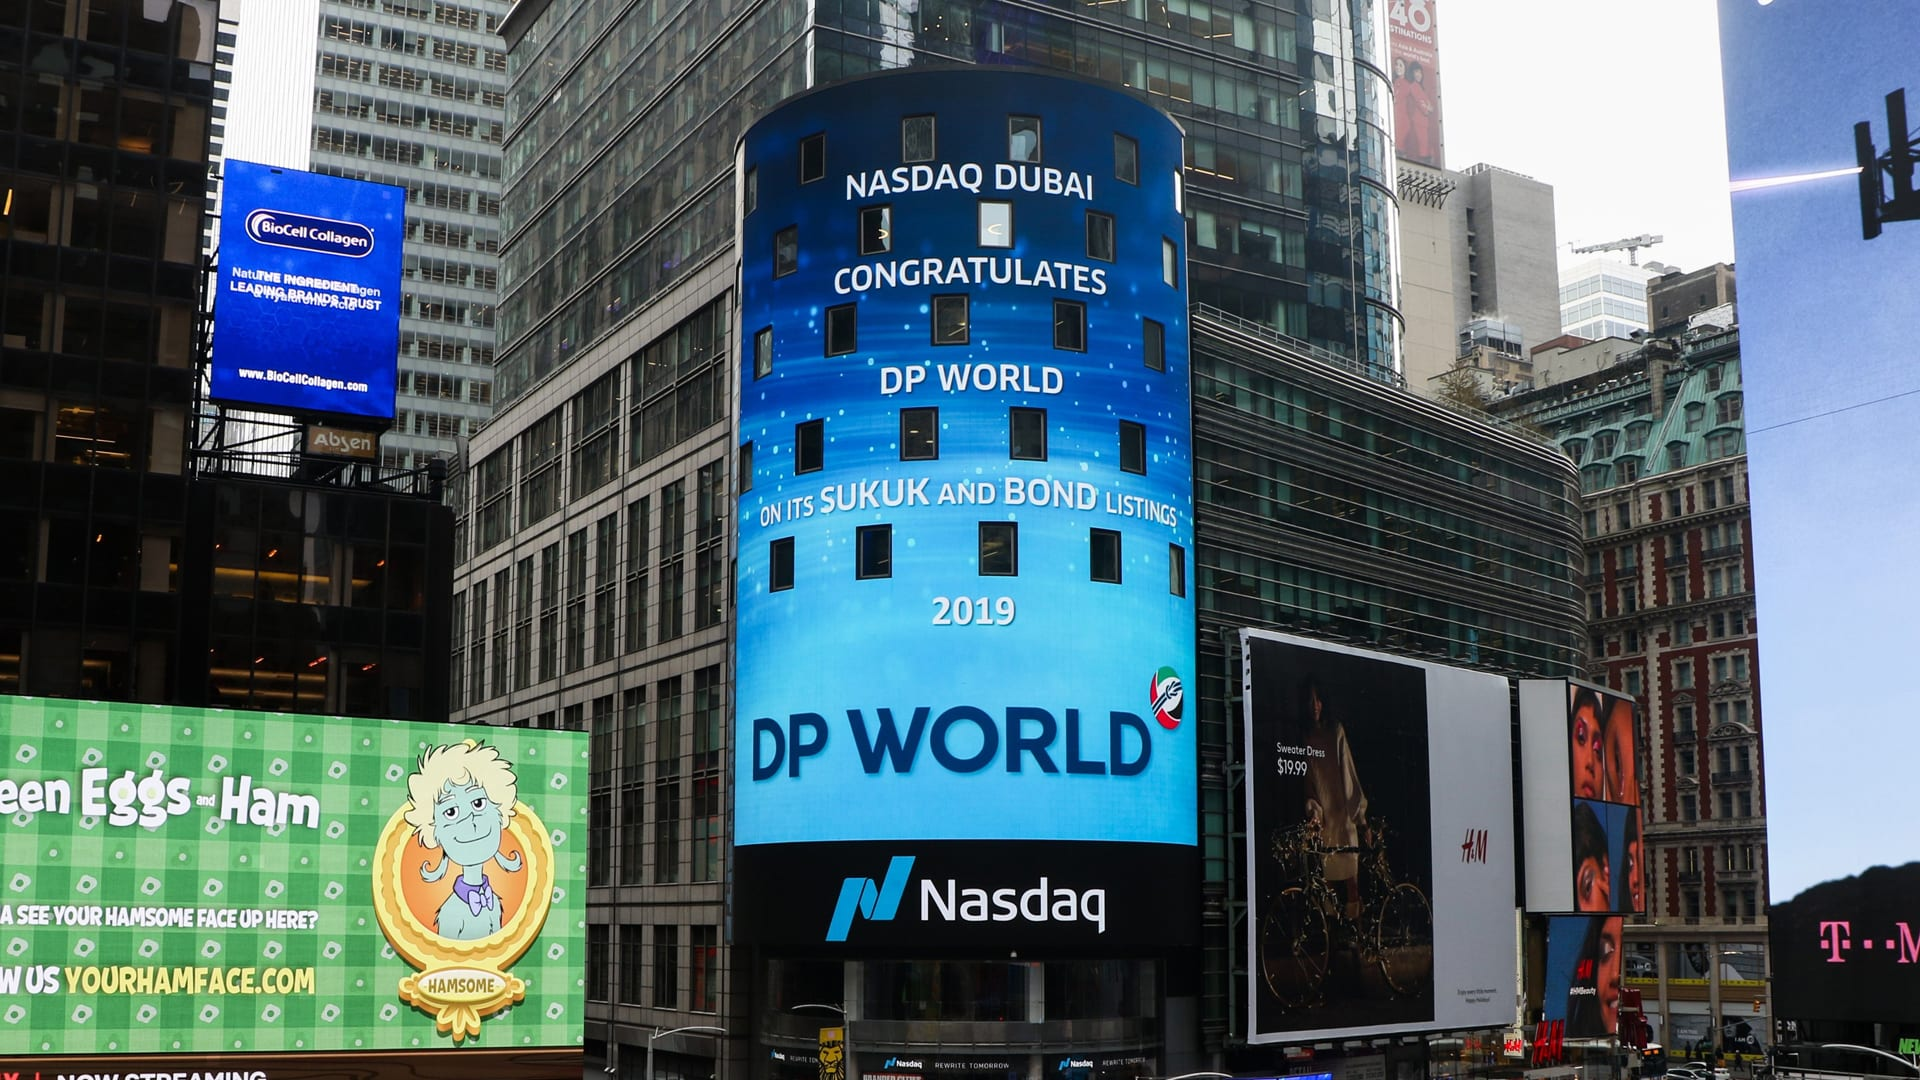 DP World Rings Nasdaq Dubai Bell after USD 2.3 Bn Listing